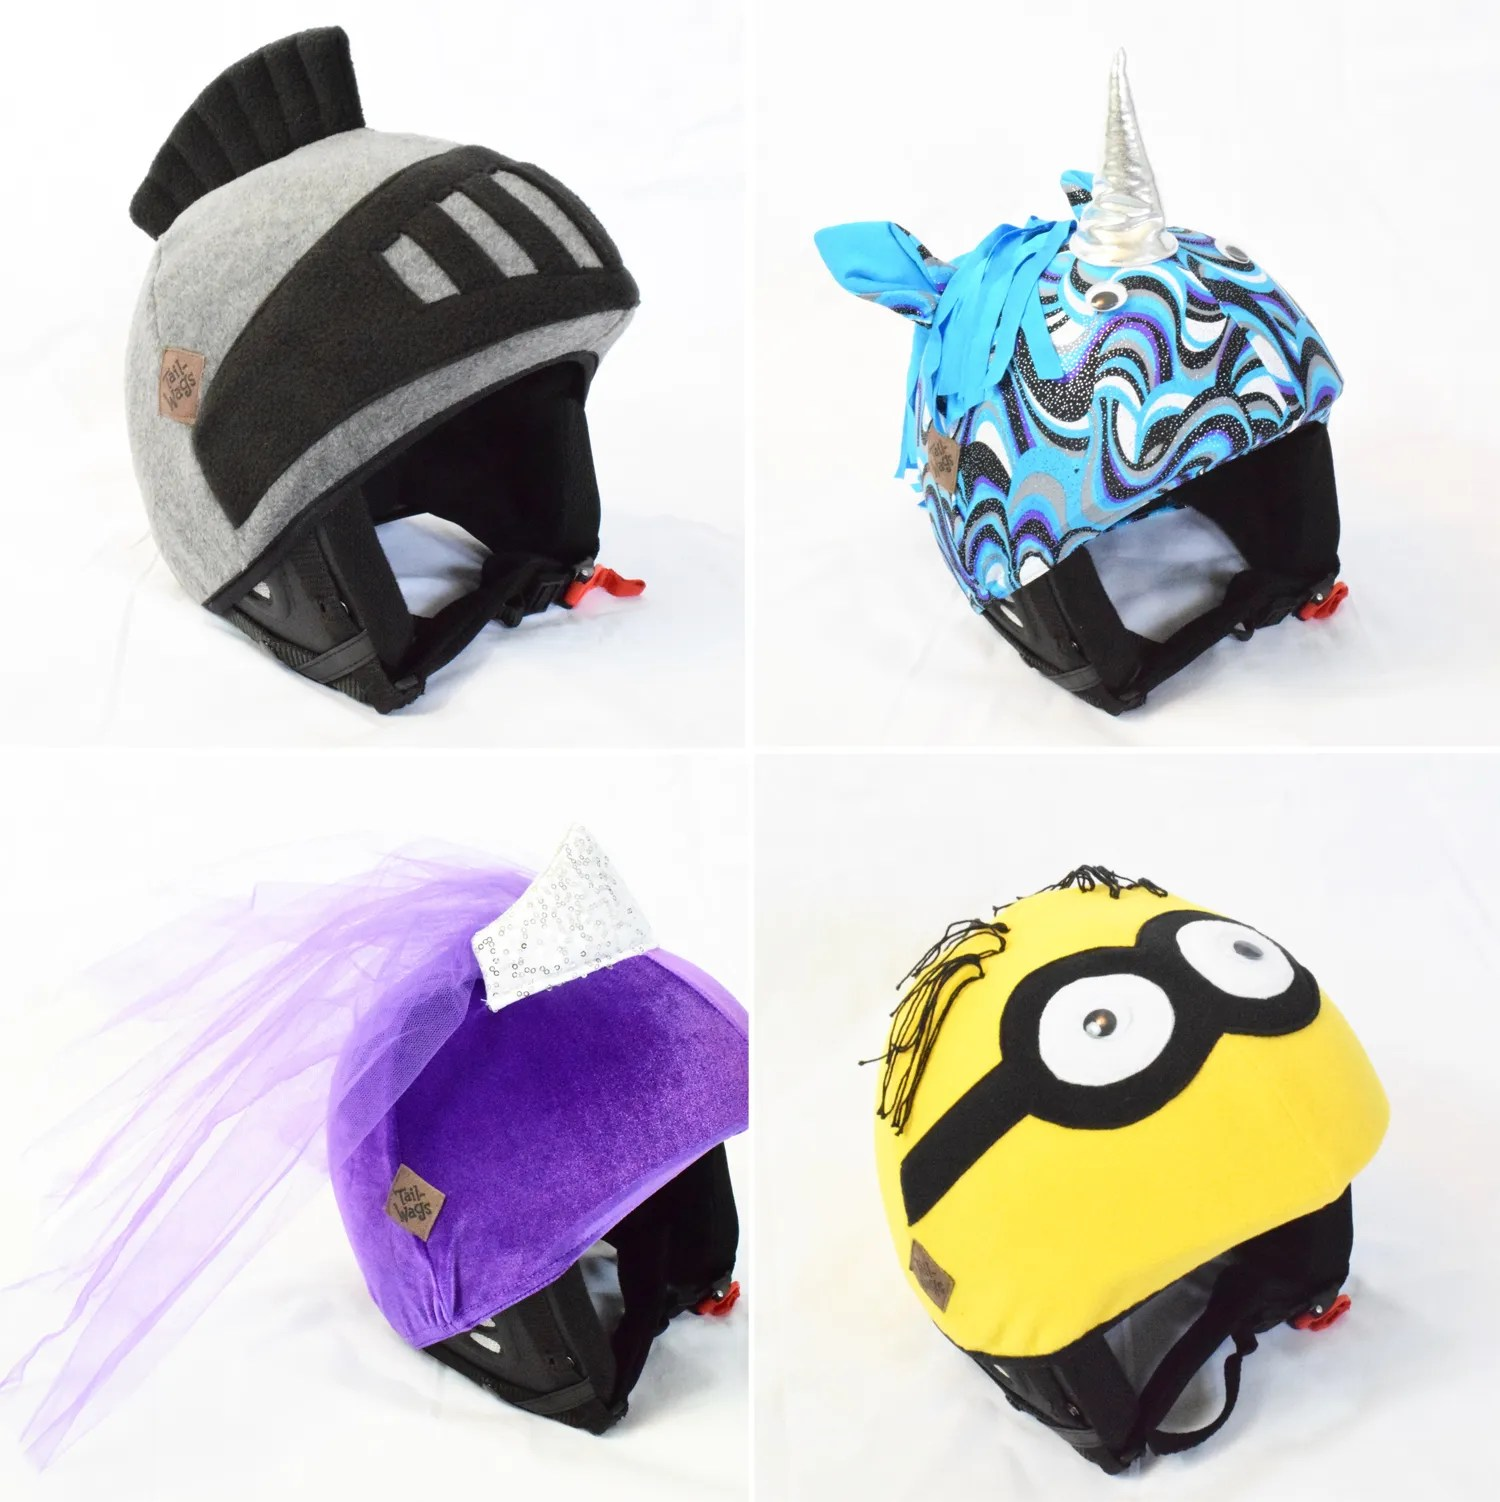 Tail-Wags helmet covers